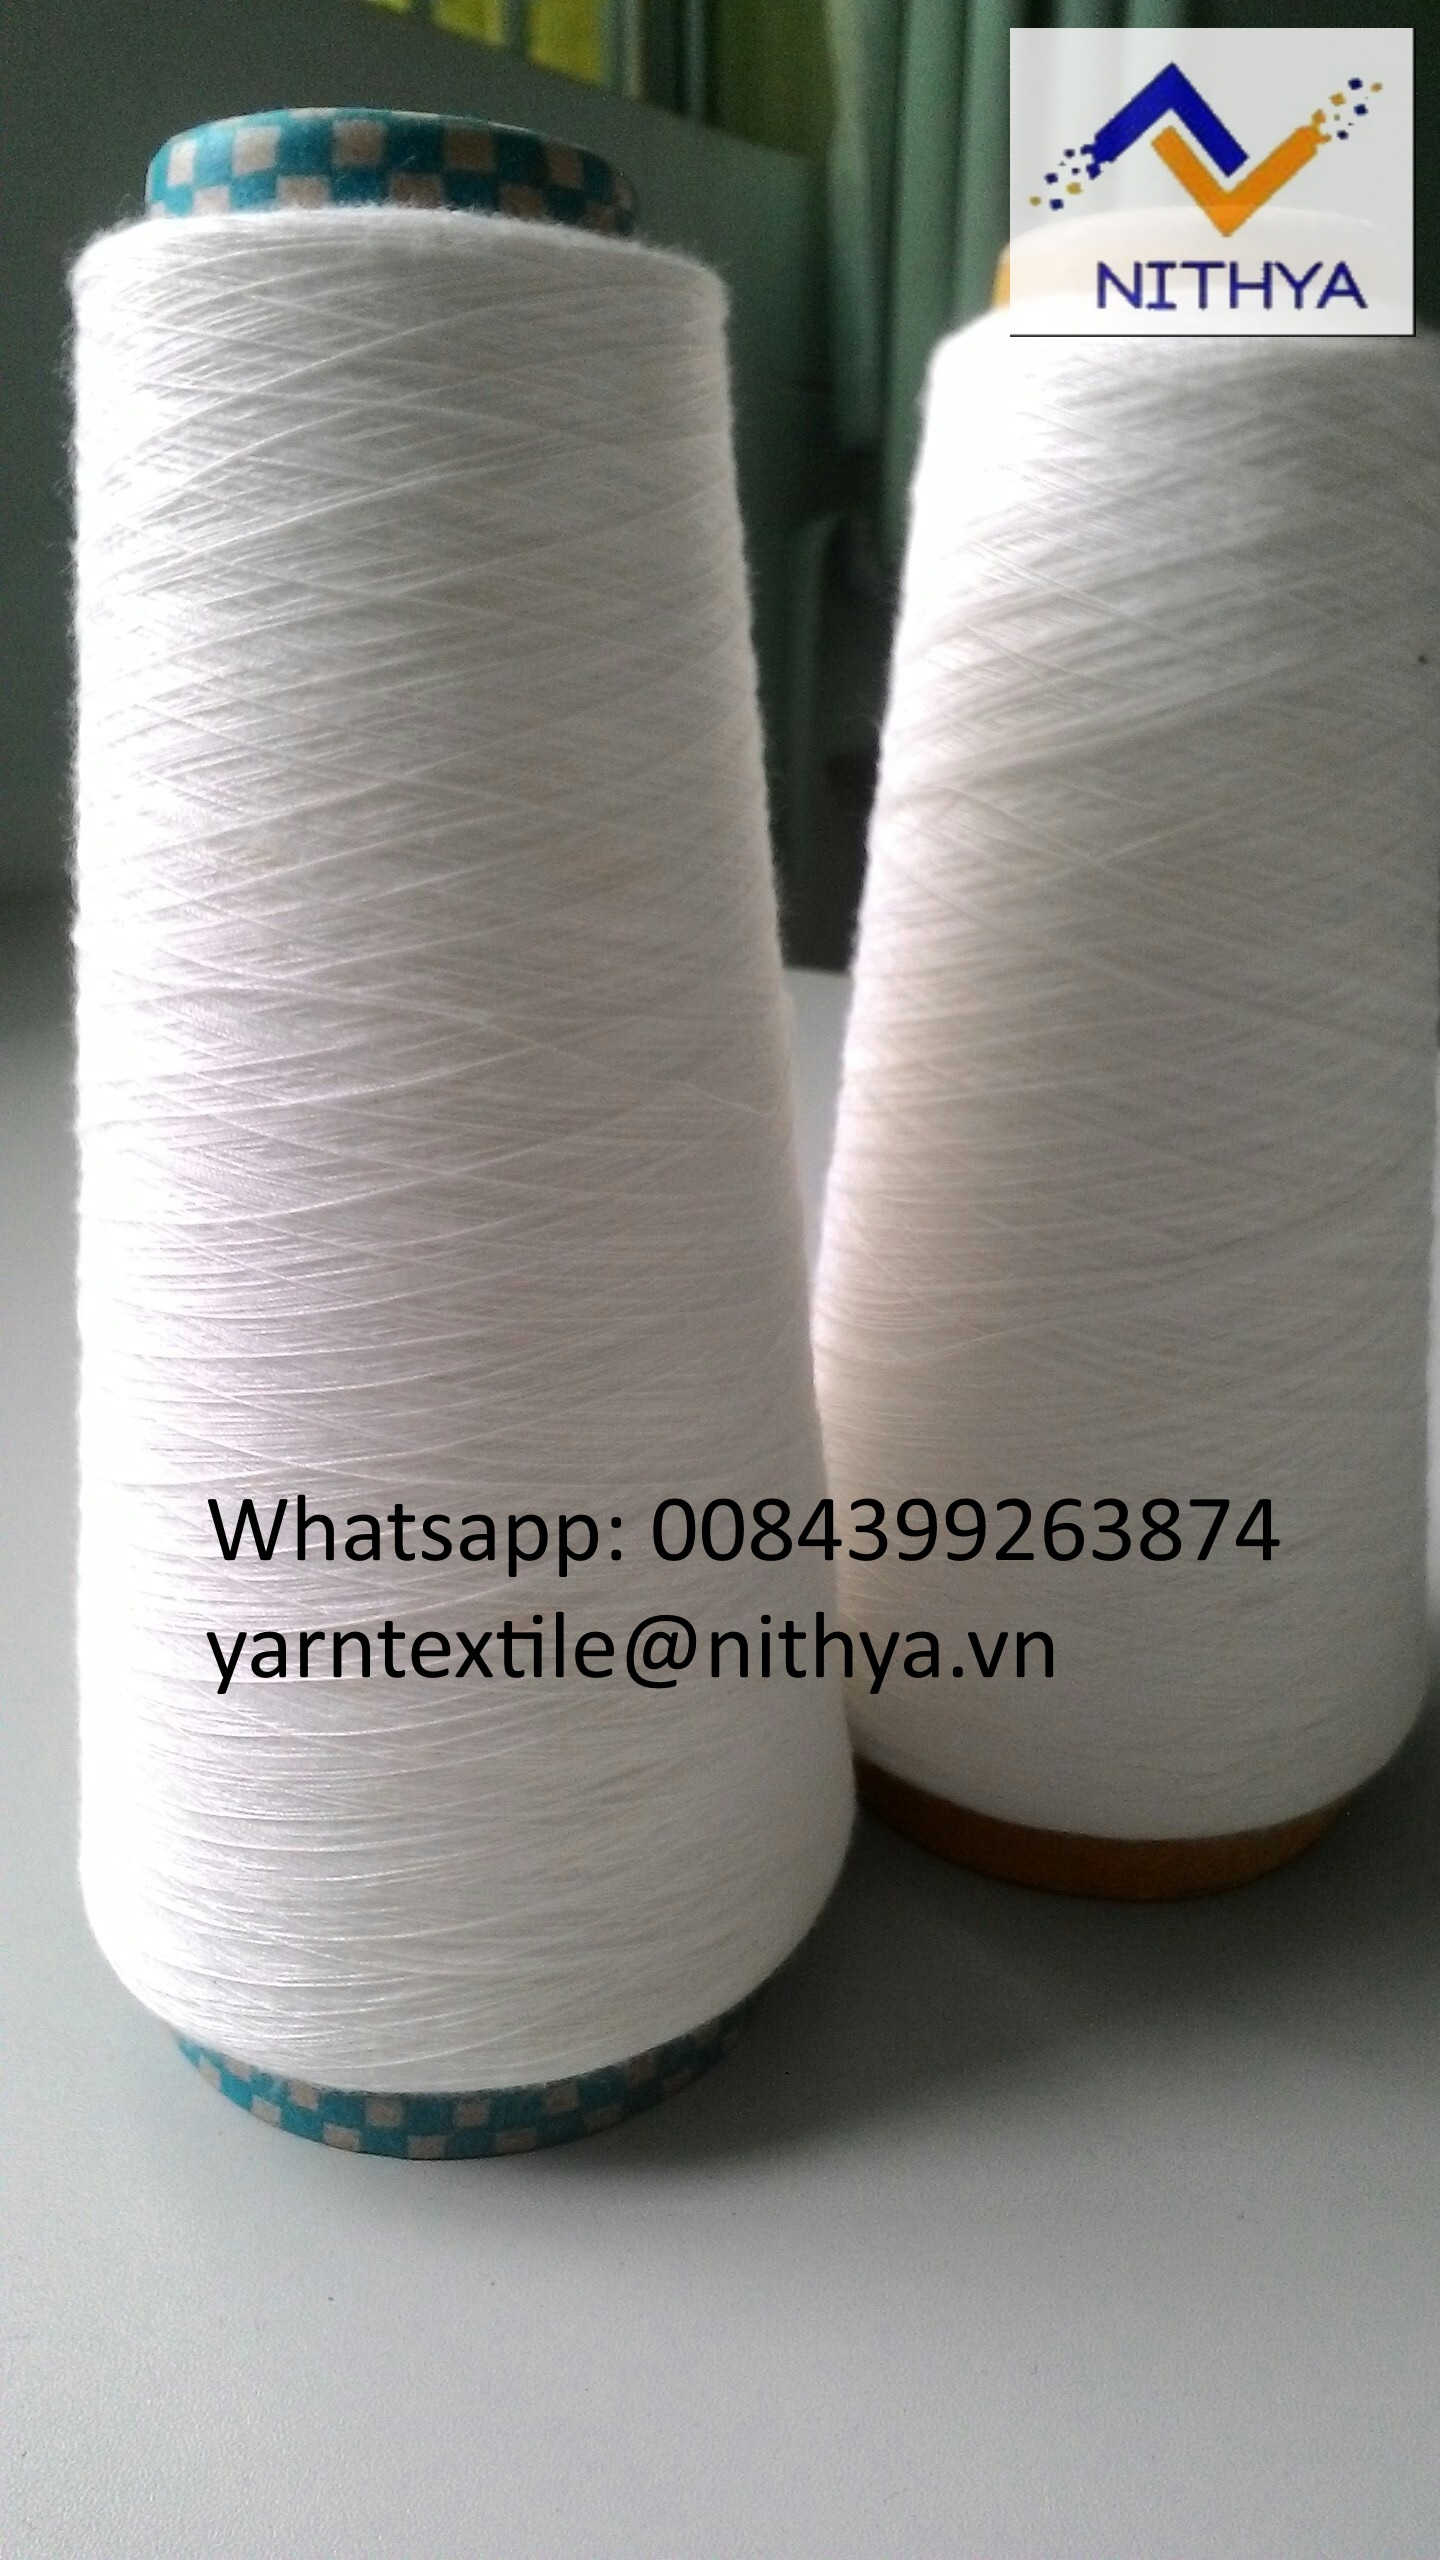 Selling 100% Polyester Yarn - Competitive Price